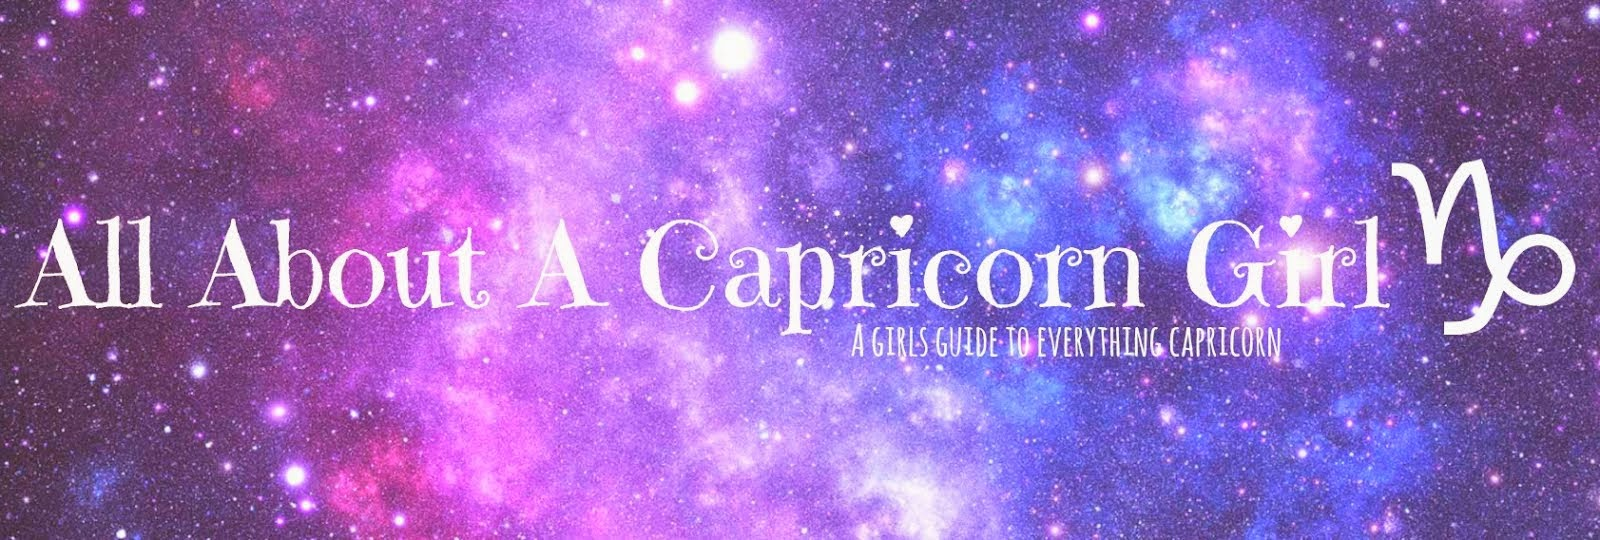 All About A Capricorn Girl